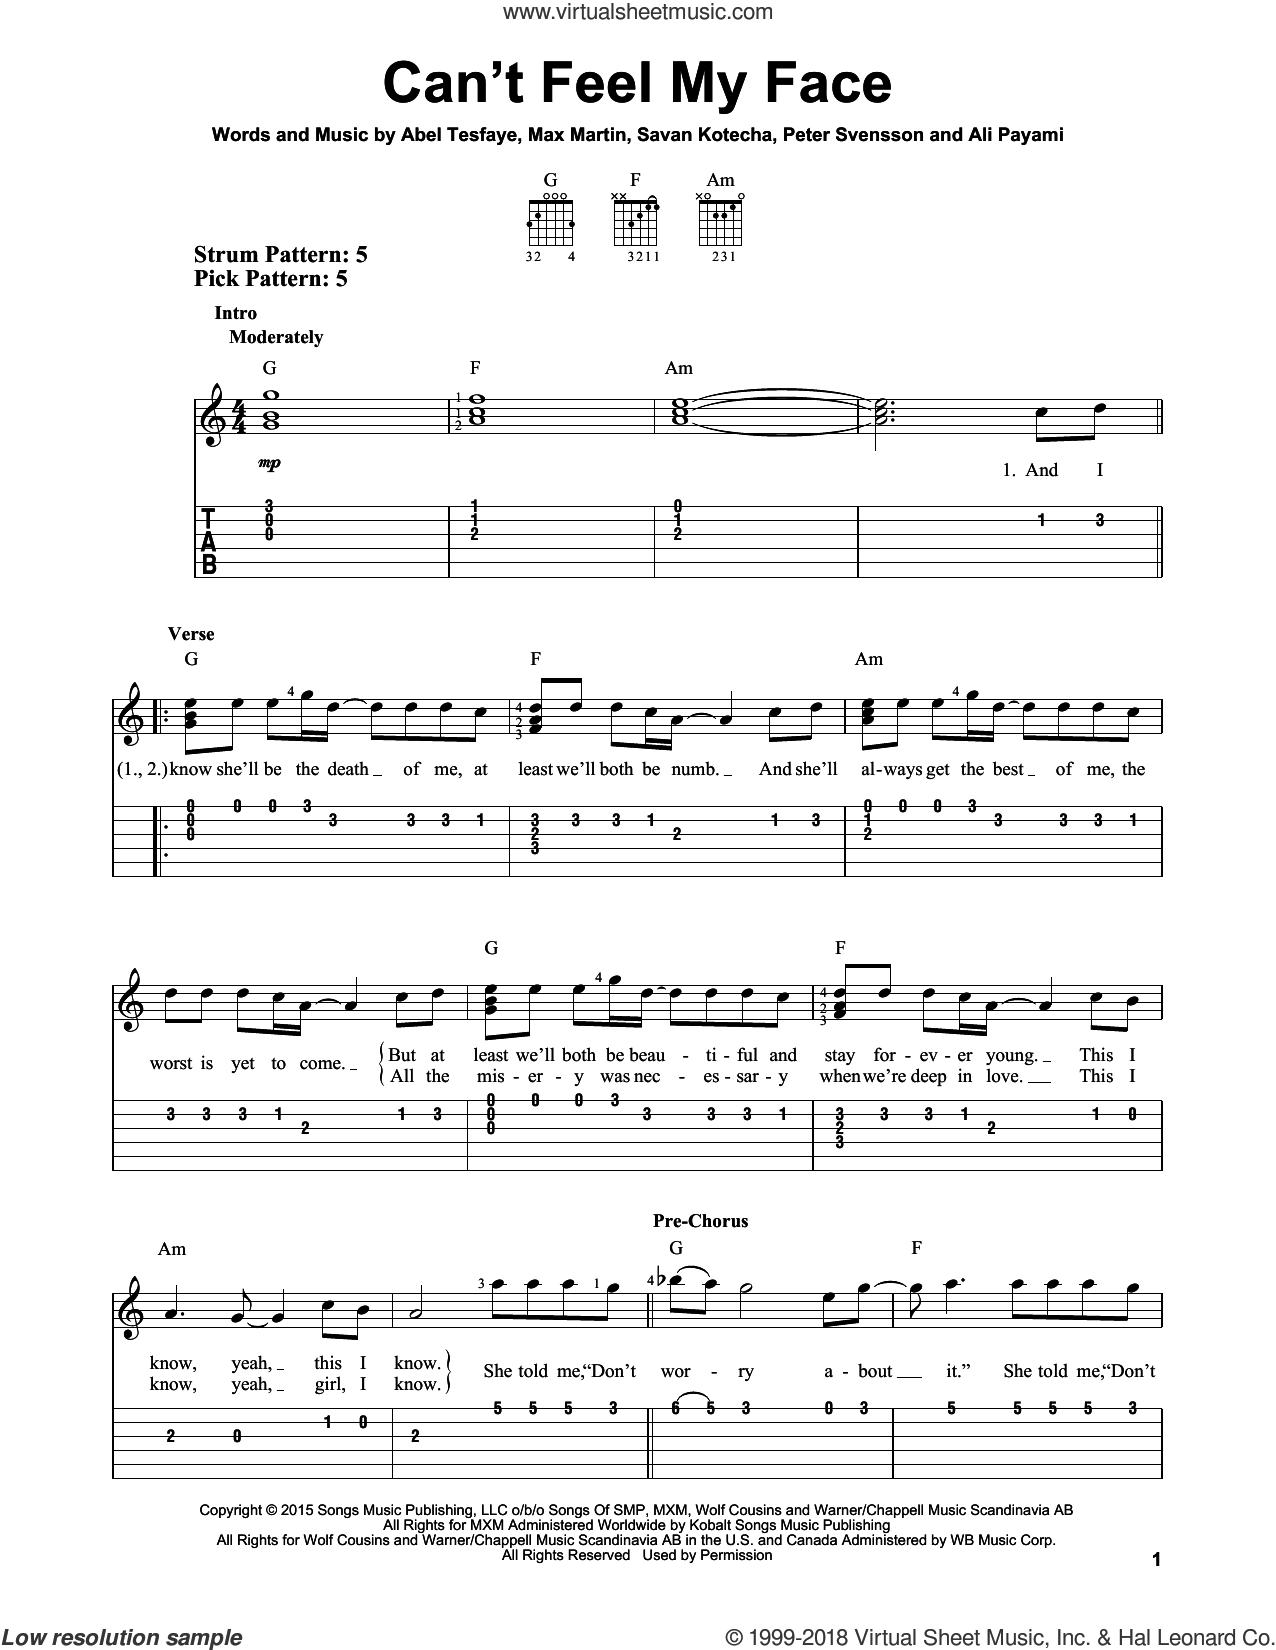 Can't Feel My Face sheet music for guitar solo (easy tablature) by The Weeknd, Abel Tesfaye, Ali Payami, Max Martin, Peter Svensson and Savan Kotecha, easy guitar (easy tablature)